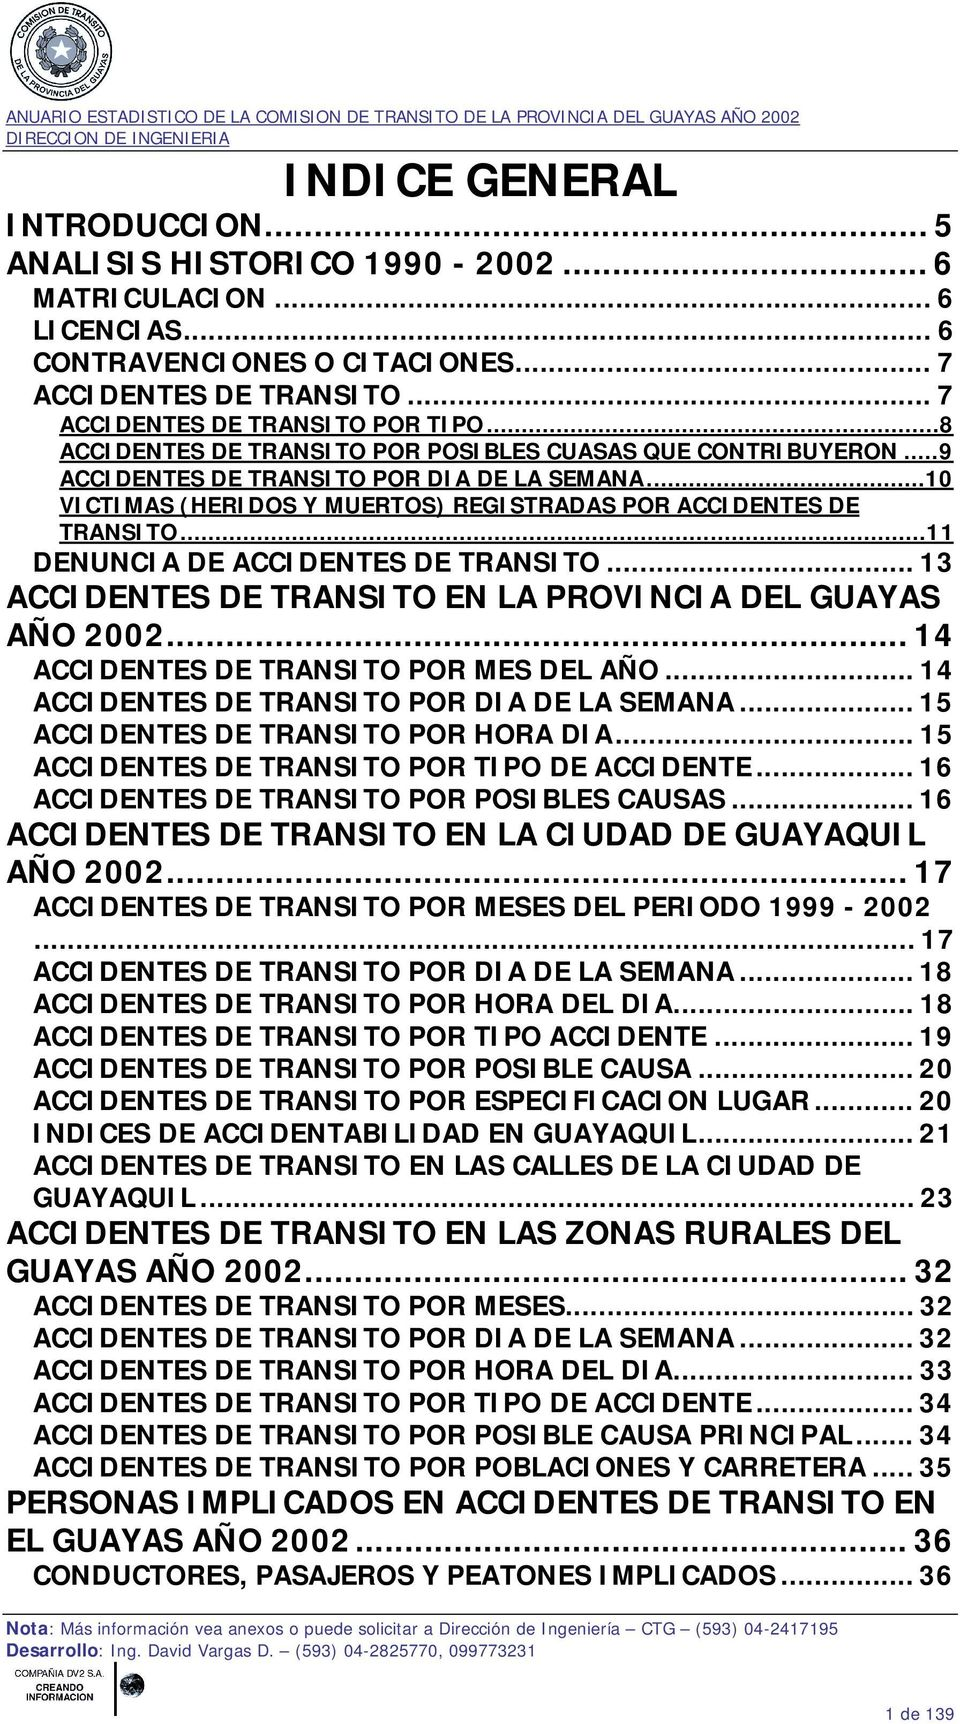 ..11 DENUNCIA DE ACCIDENTES DE TRANSITO... 13 ACCIDENTES DE TRANSITO EN LA PROVINCIA DEL GUAYAS AÑO 2002... 14 ACCIDENTES DE TRANSITO POR MES DEL AÑO... 14 ACCIDENTES DE TRANSITO POR DIA DE LA SEMANA.